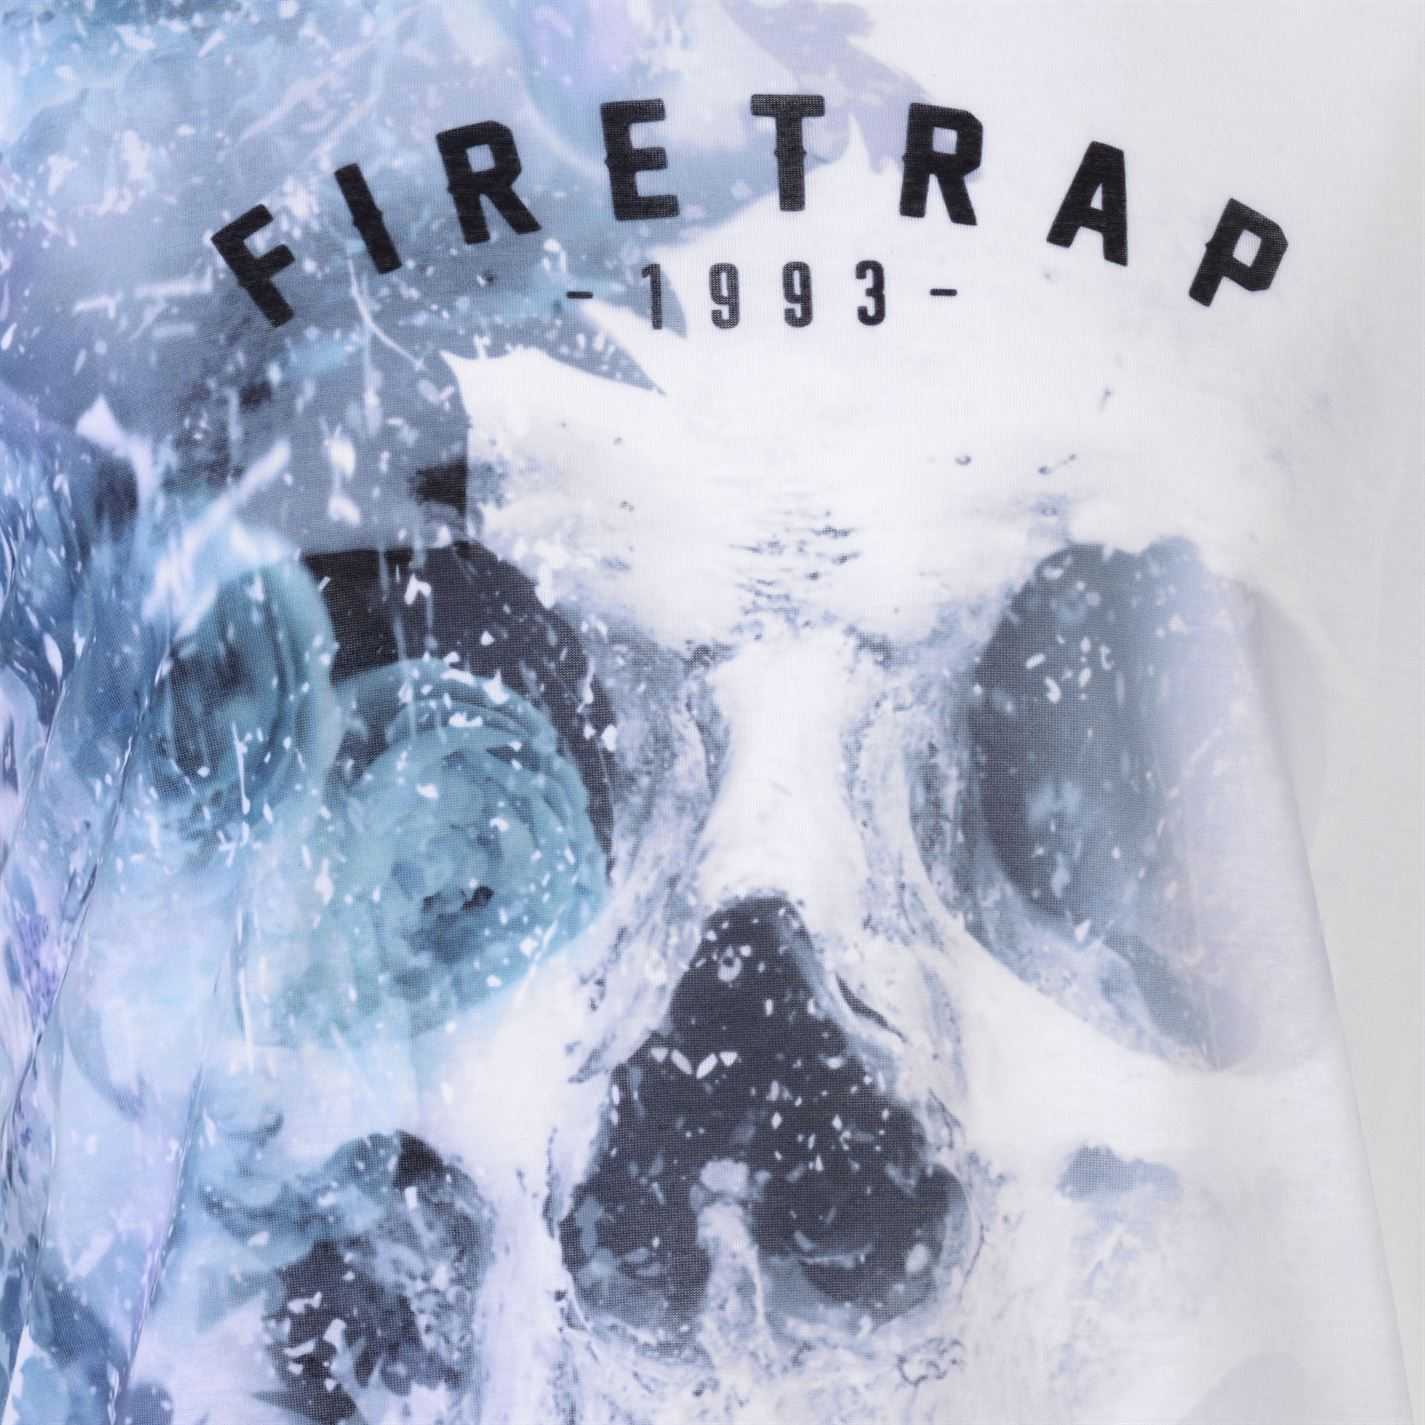 Firetrap Sub T Shirt Mens Gents Crew Neck Tee Top Short Sleeve Round Lightweight